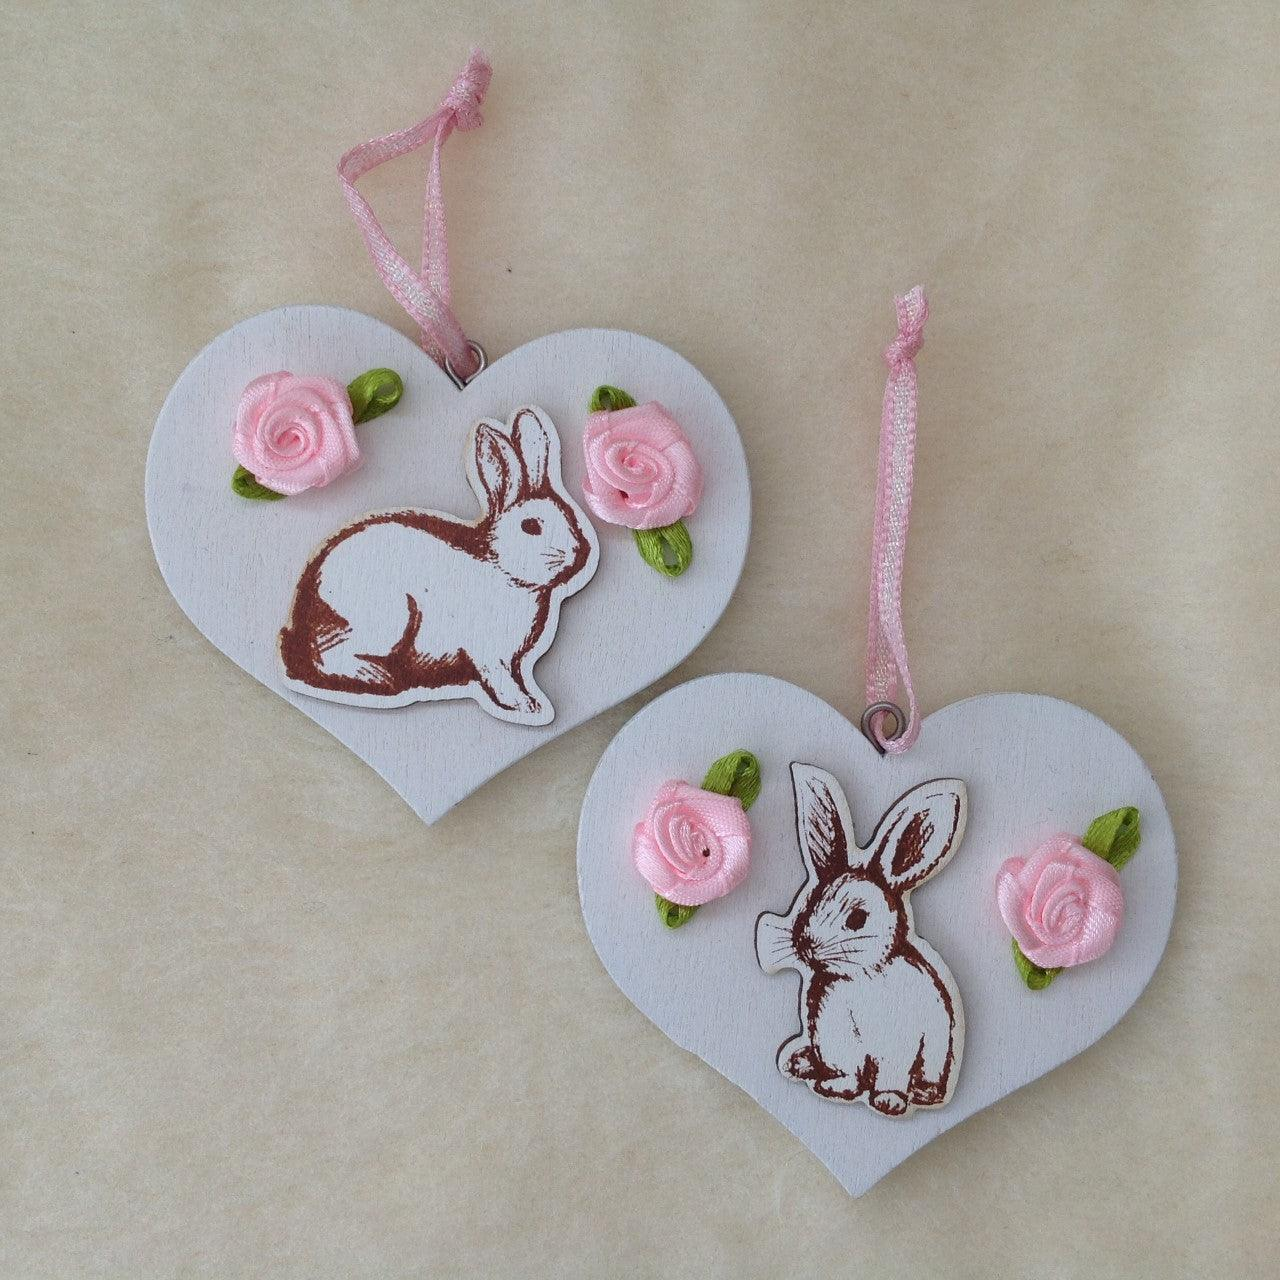 Pink Rose Bunny Rabbit Wooden Heart Decorations